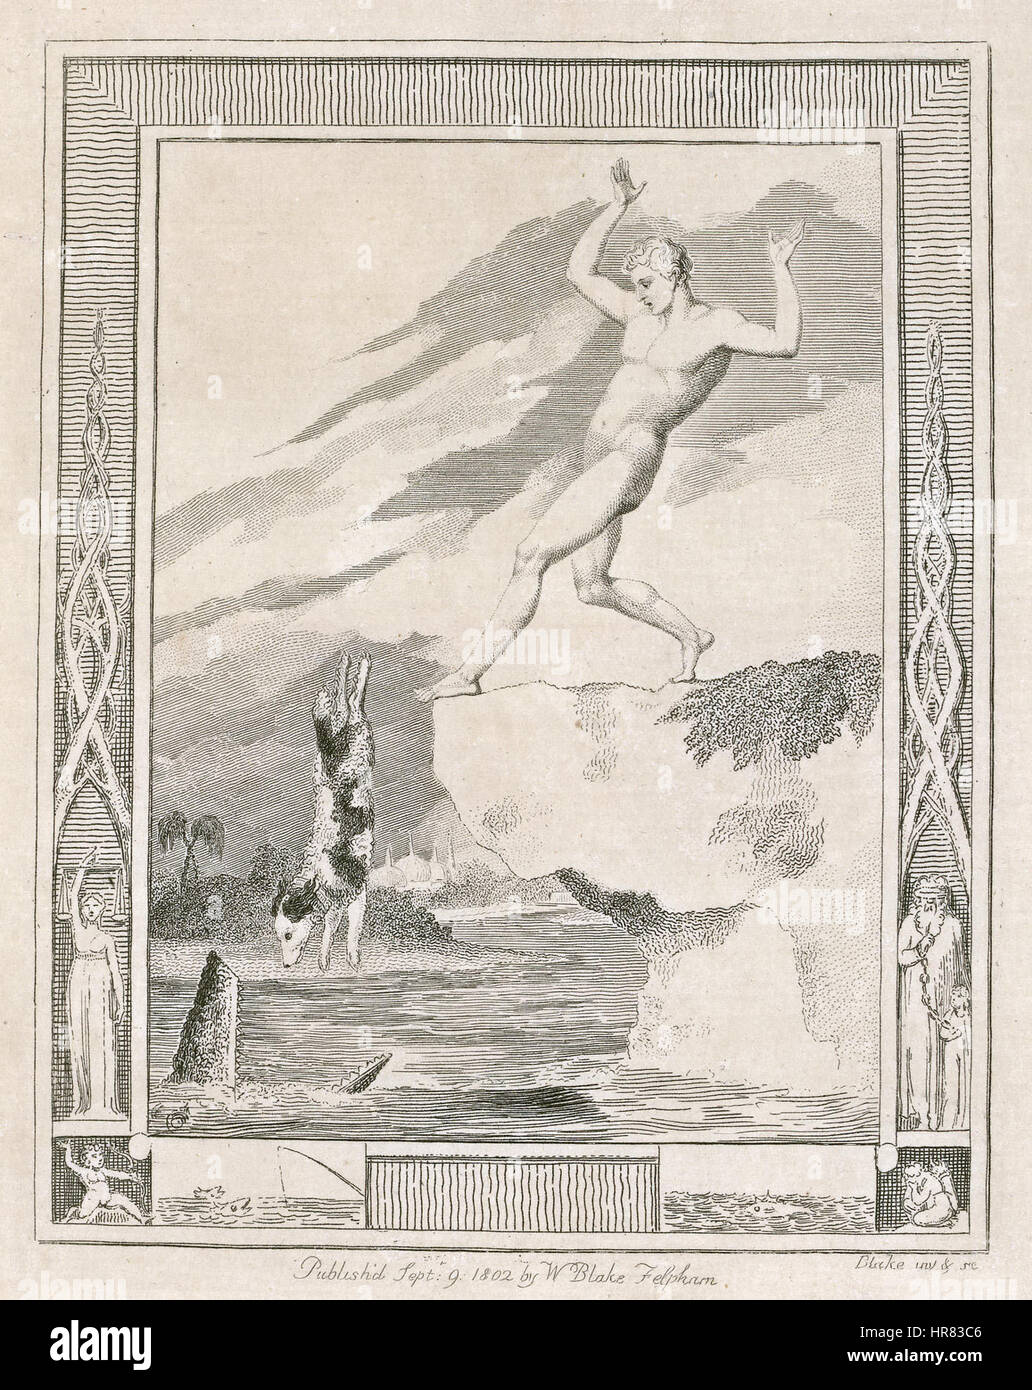 William Blake for Hayley, Designs to a Series of Ballads, copy 1, object 12 Frontispiece to The Dog, Ballad the - Stock Image